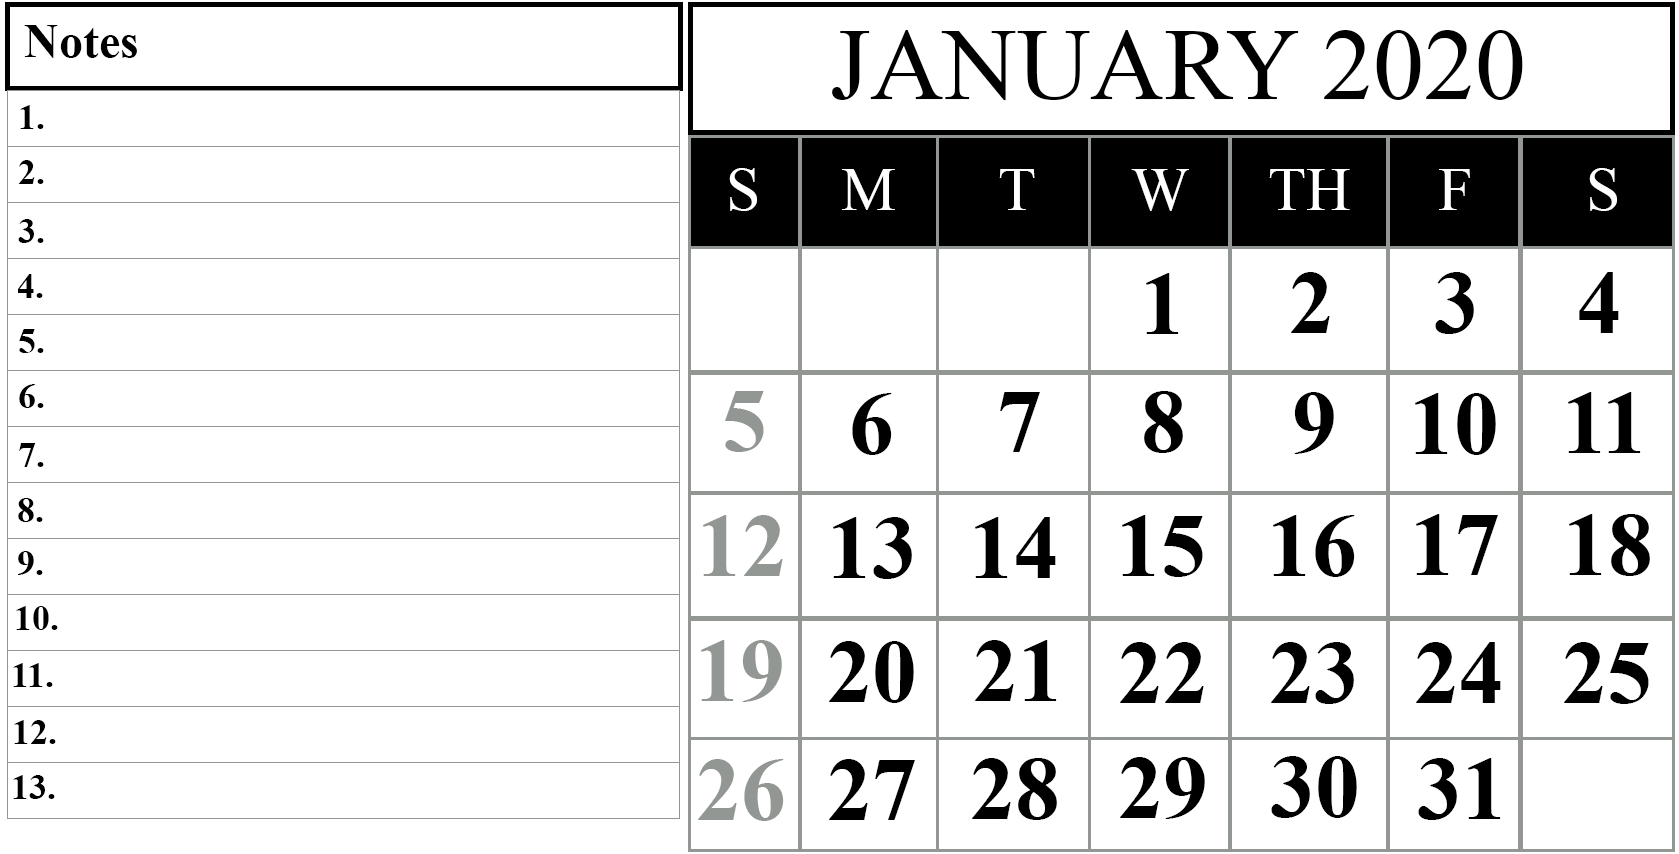 January 2020 Calendar with Notes